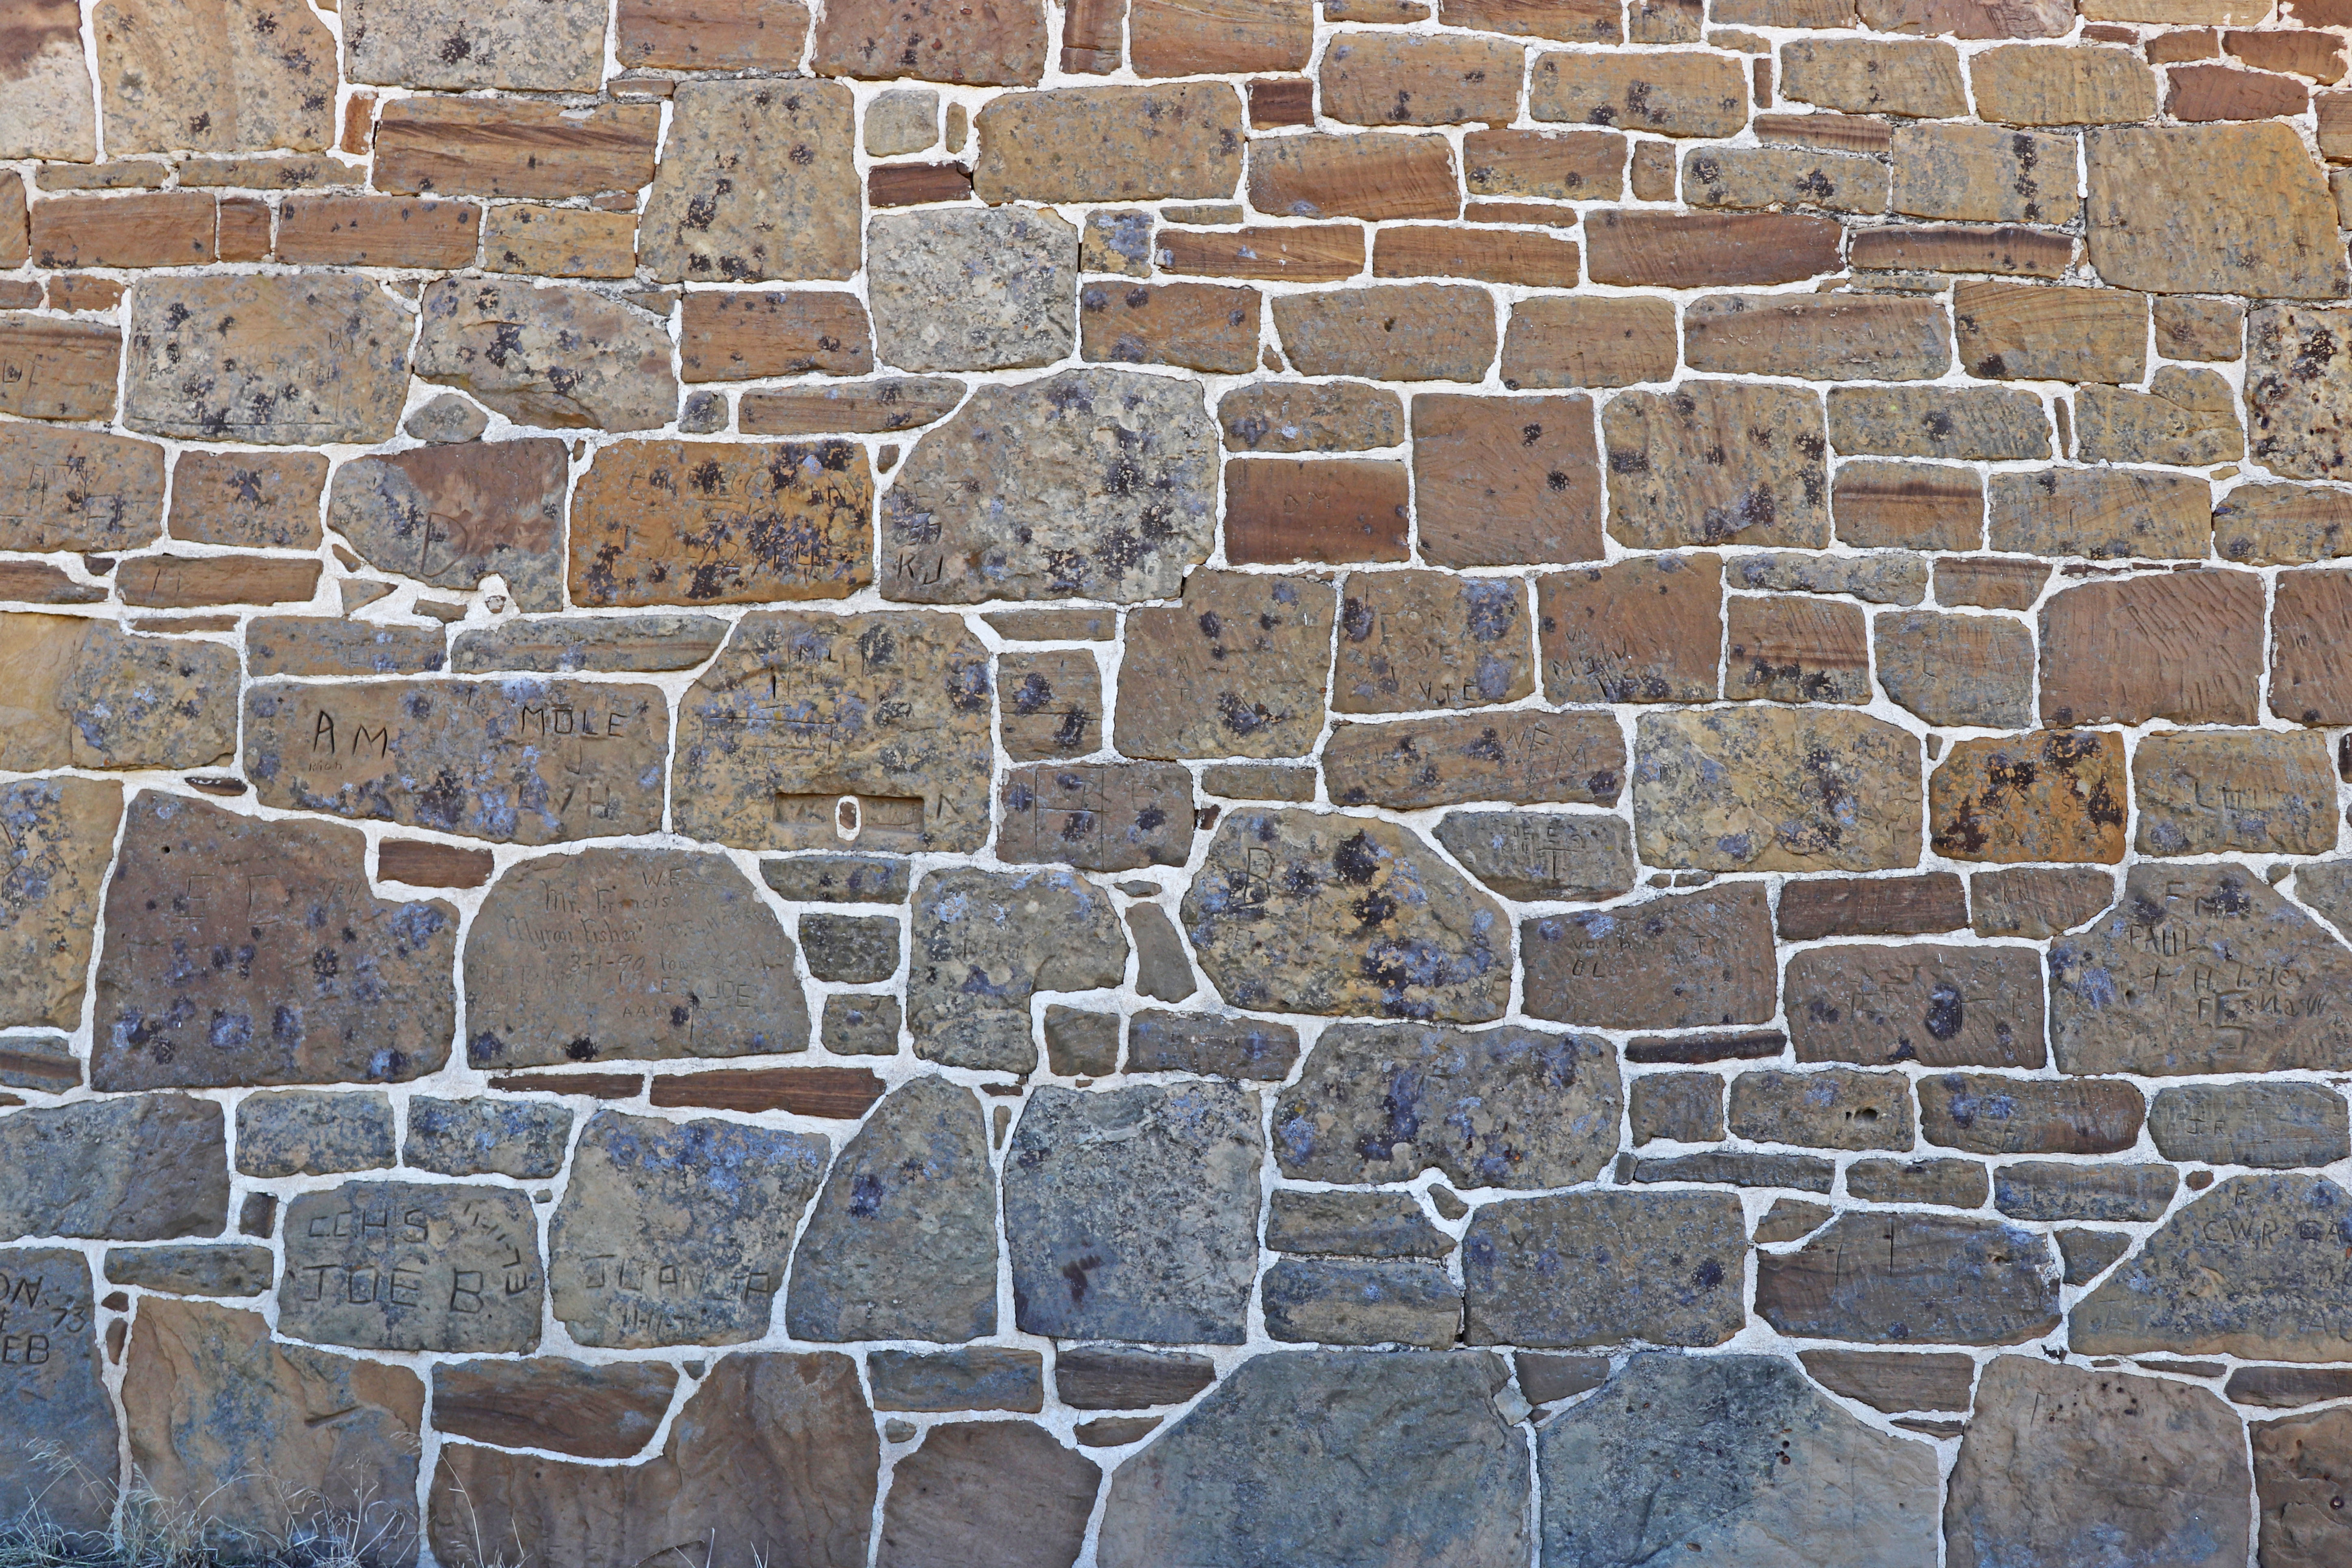 Dakota Sandstone wall of the shop building at Fort Larned National Historic Site.